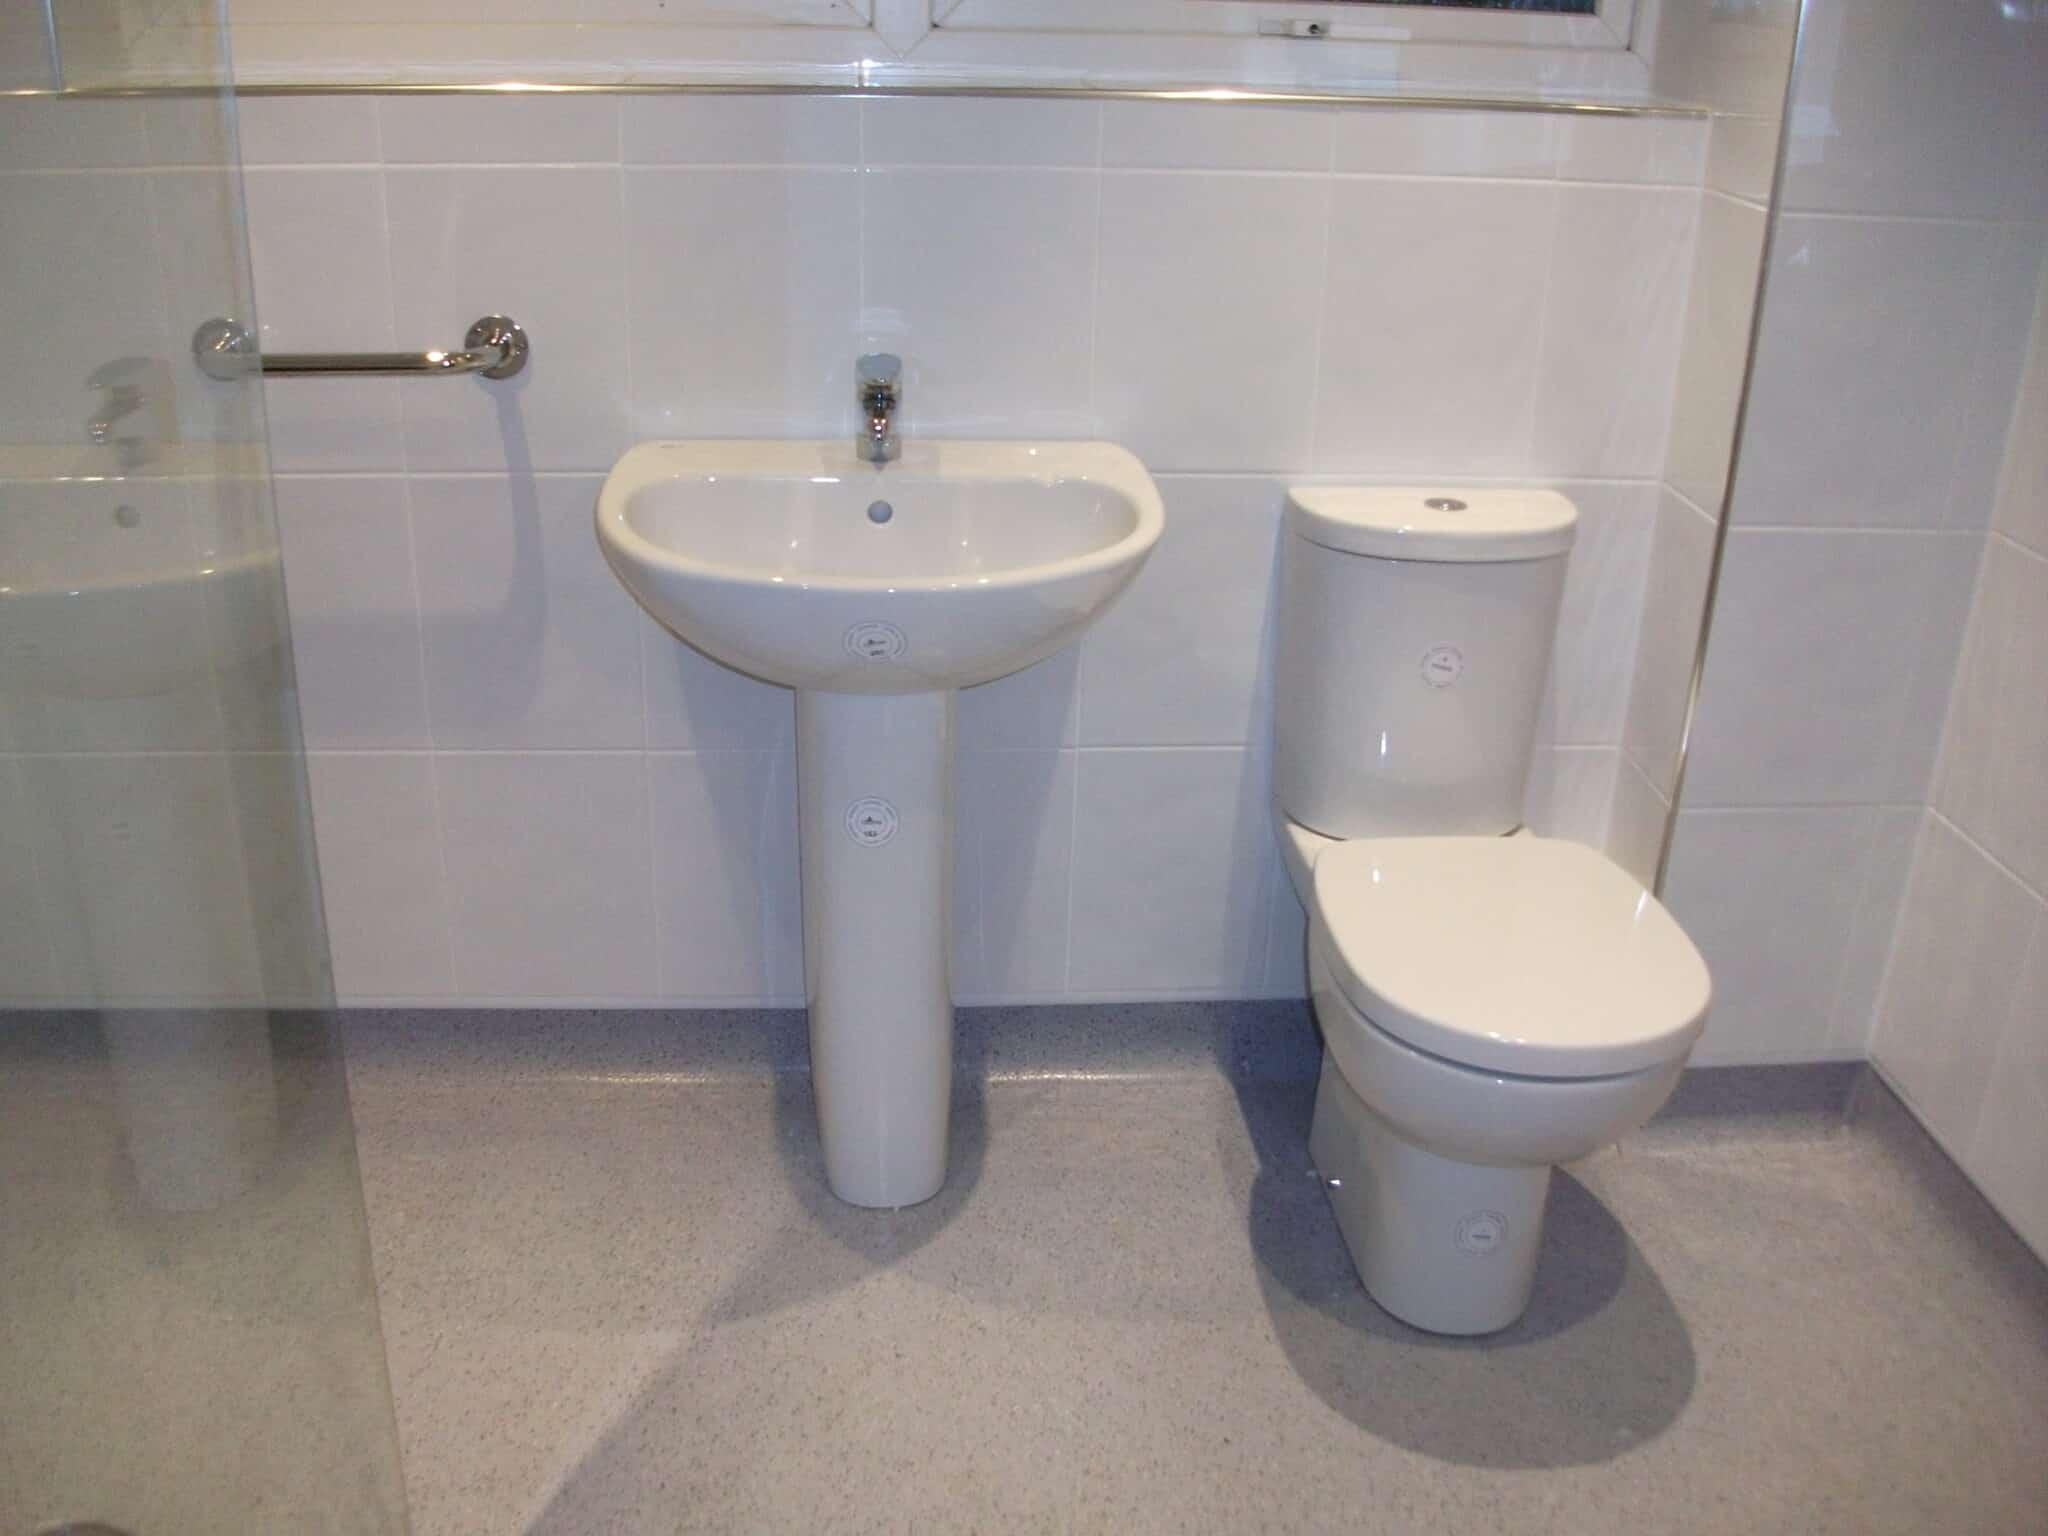 Bathroom conversion to wetroom, level access, Brixworth 2